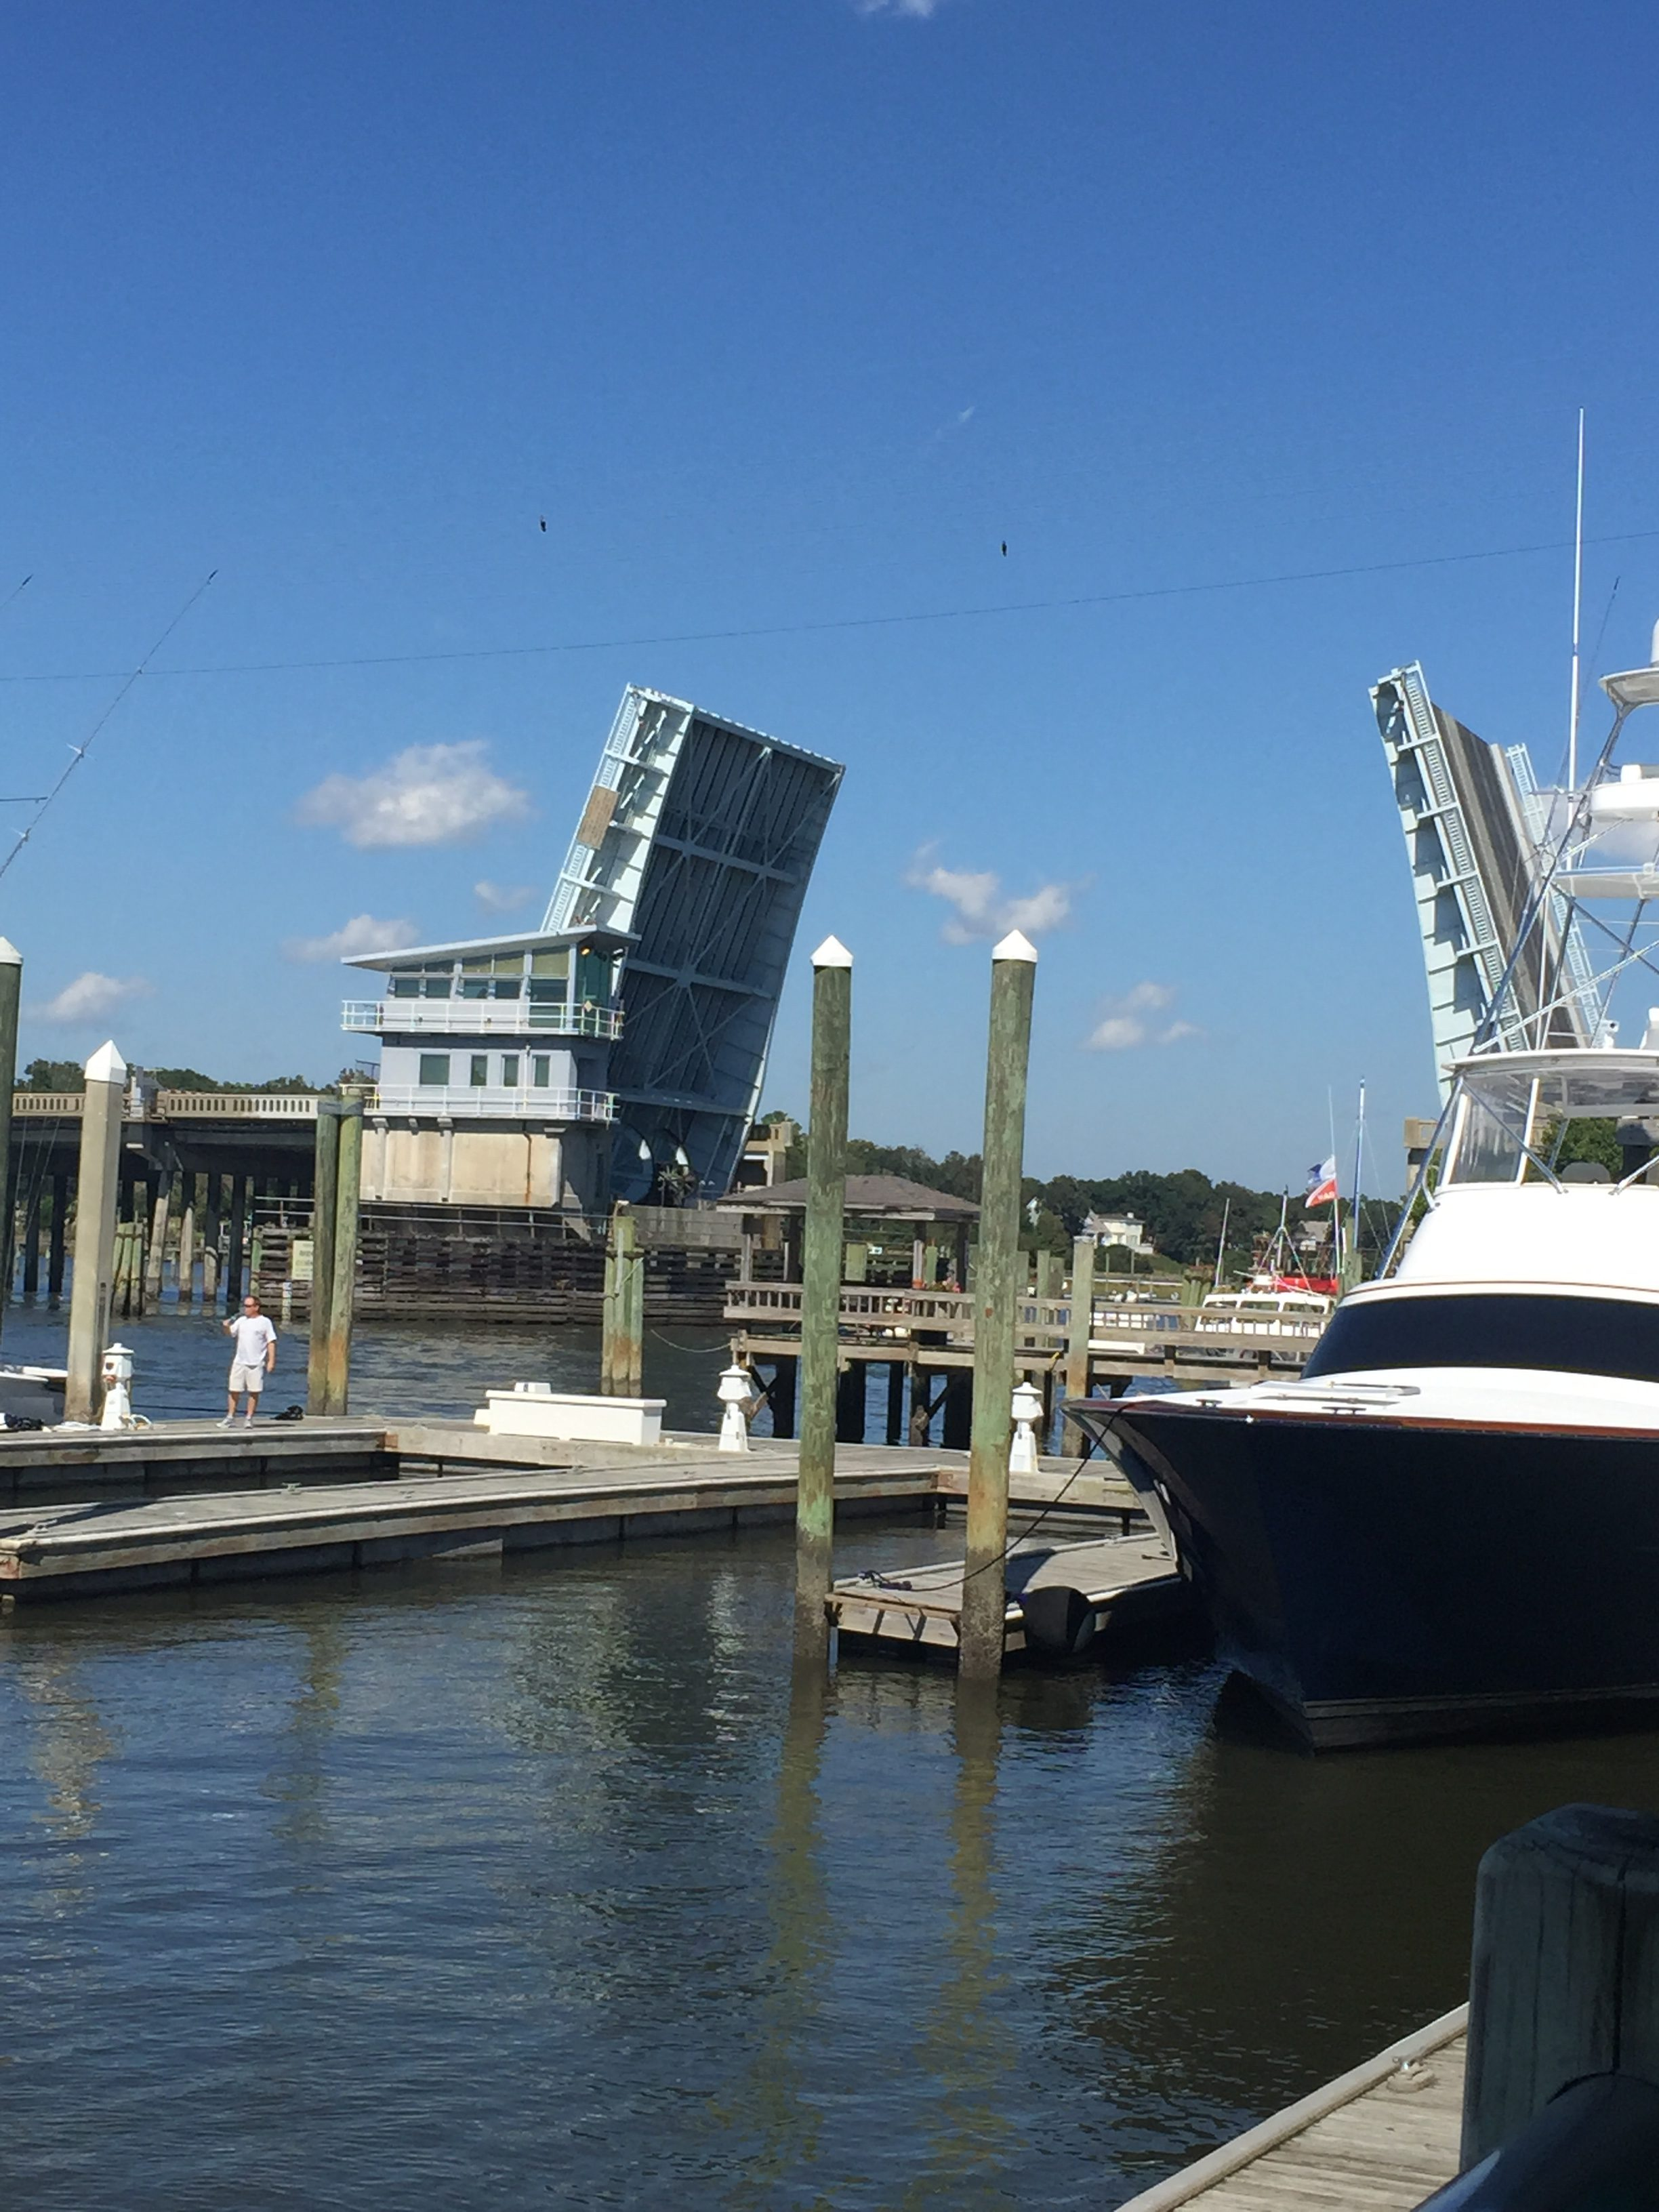 wrightsville chat Wrightsville beach to beaufort weekend trip october 3, 2016 reliantmarine enjoy some amazing scenery on the water while taking the intracoastal waterway from wrightsville beach to historical beaufort.